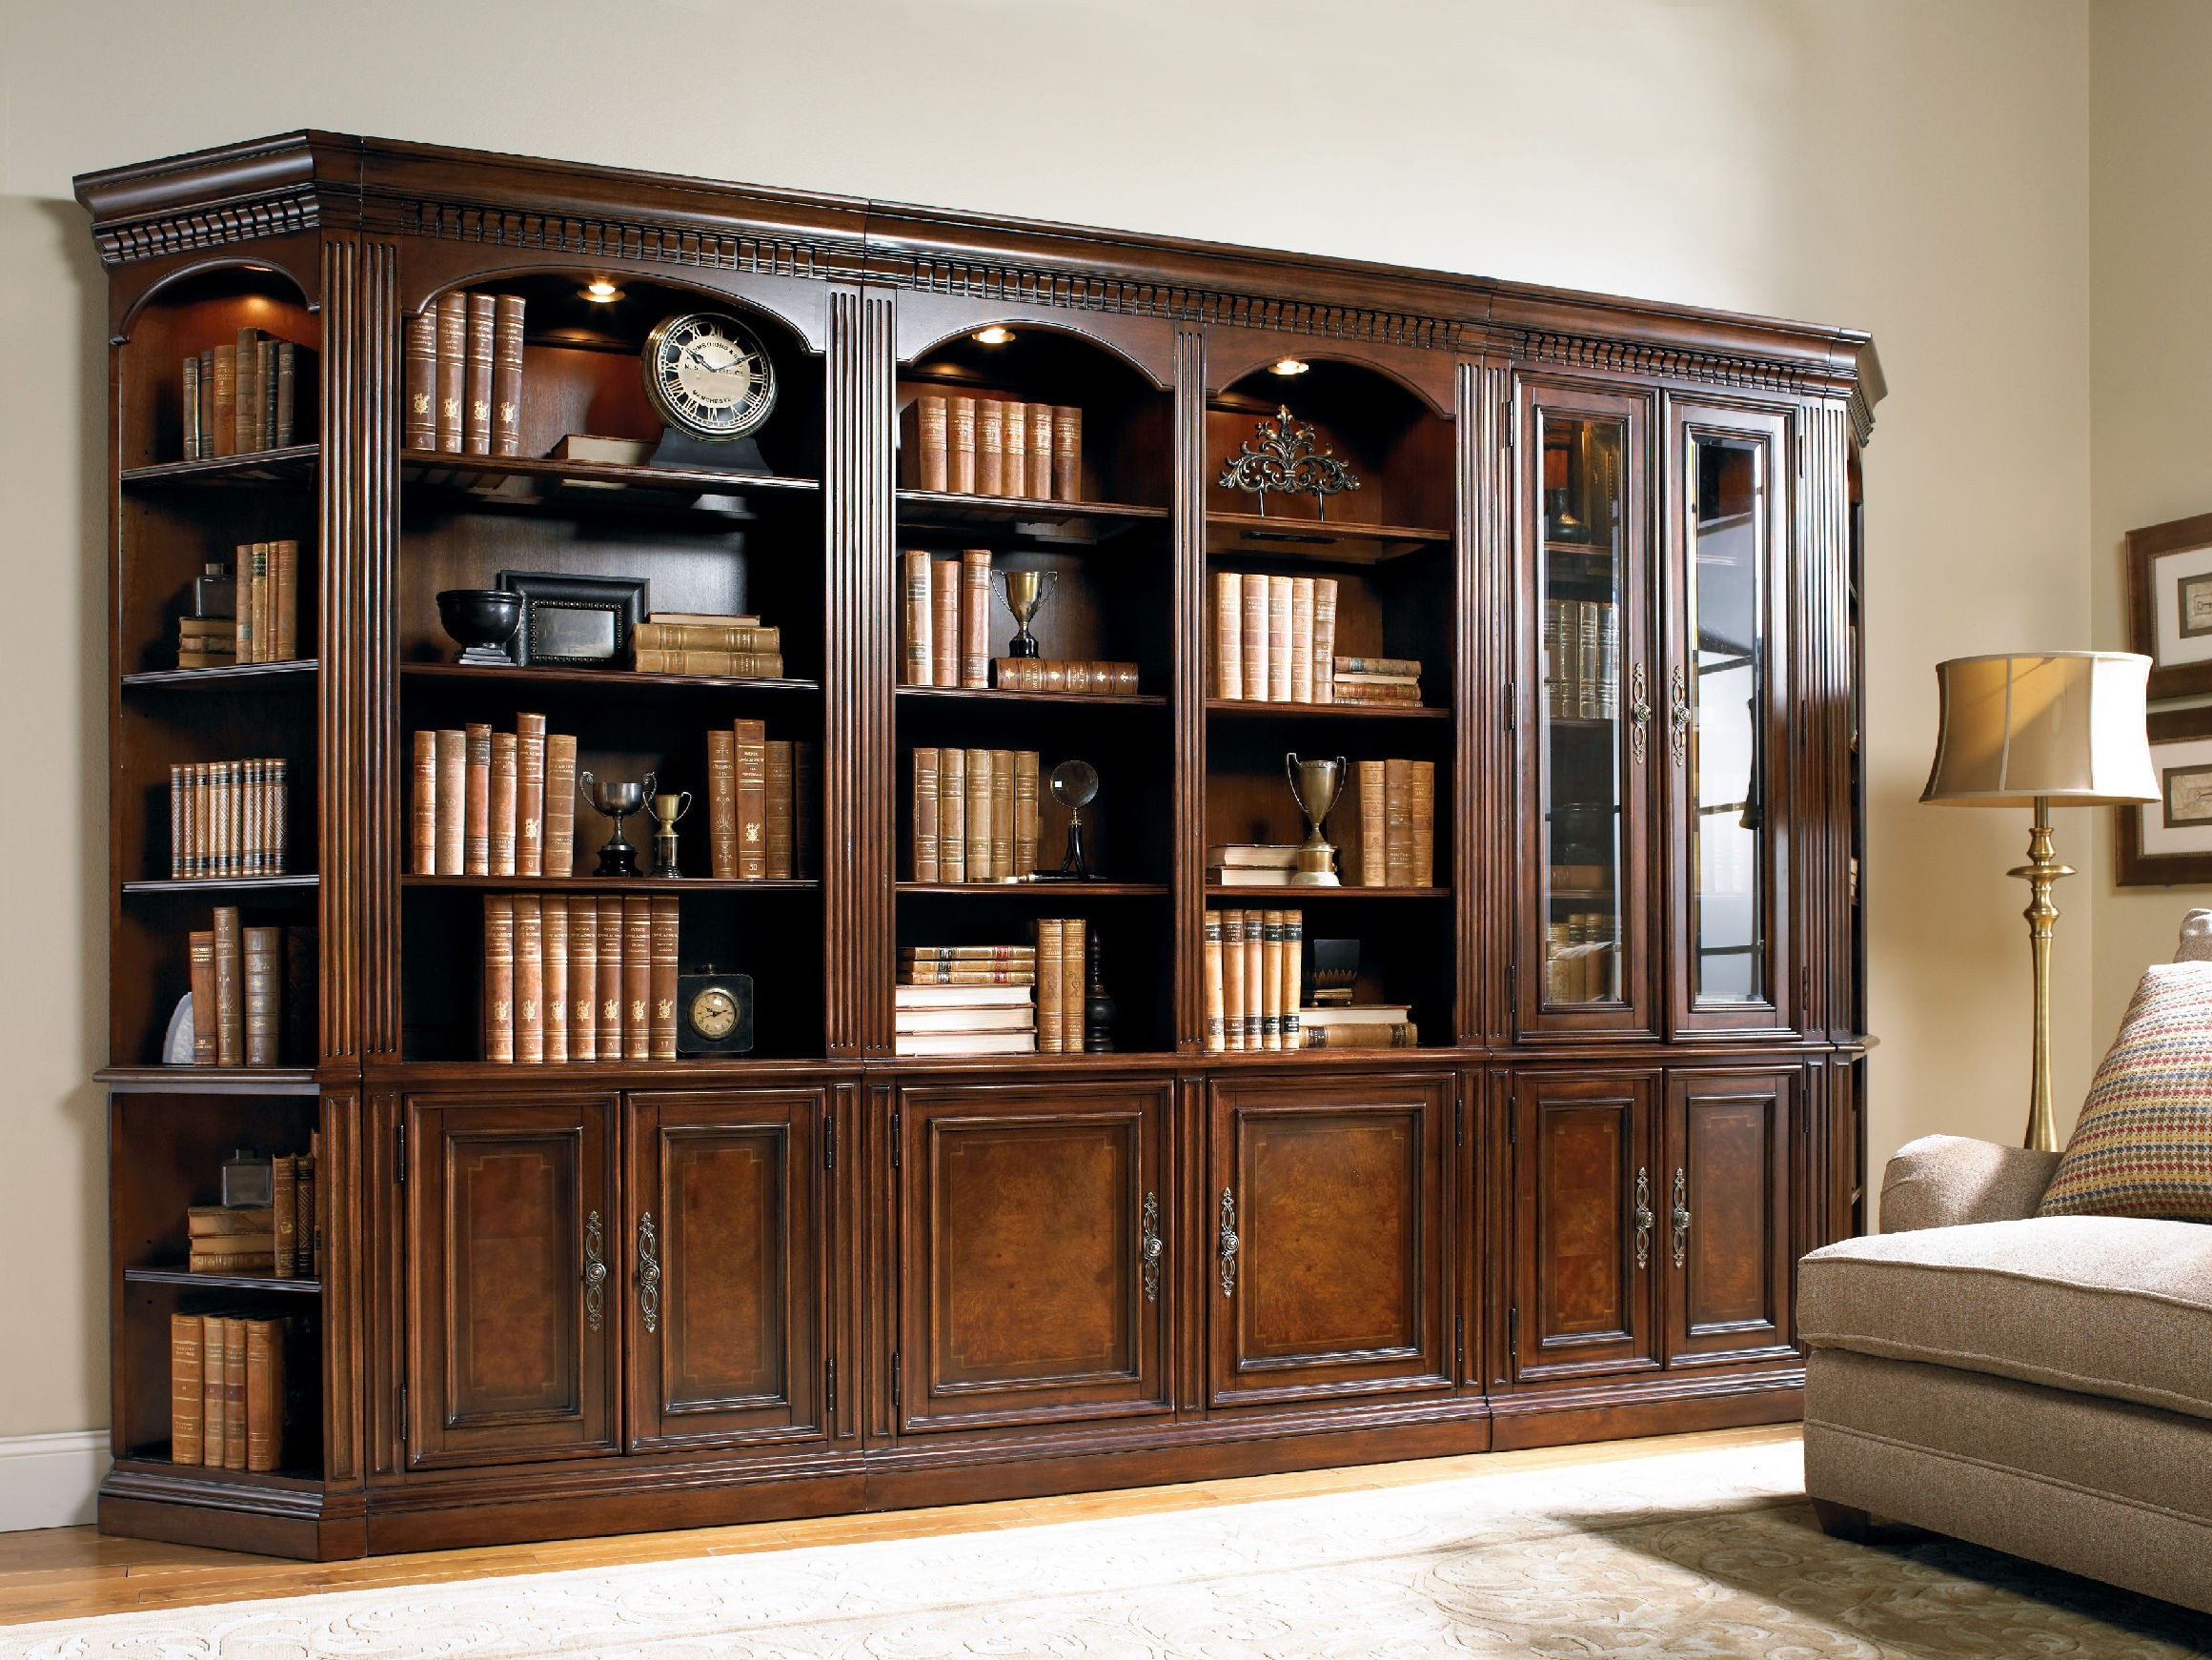 Free Standing Black Wooden Bookcase With Four Shelves Also Glass Pertaining To Large Wooden Bookcases (View 12 of 15)